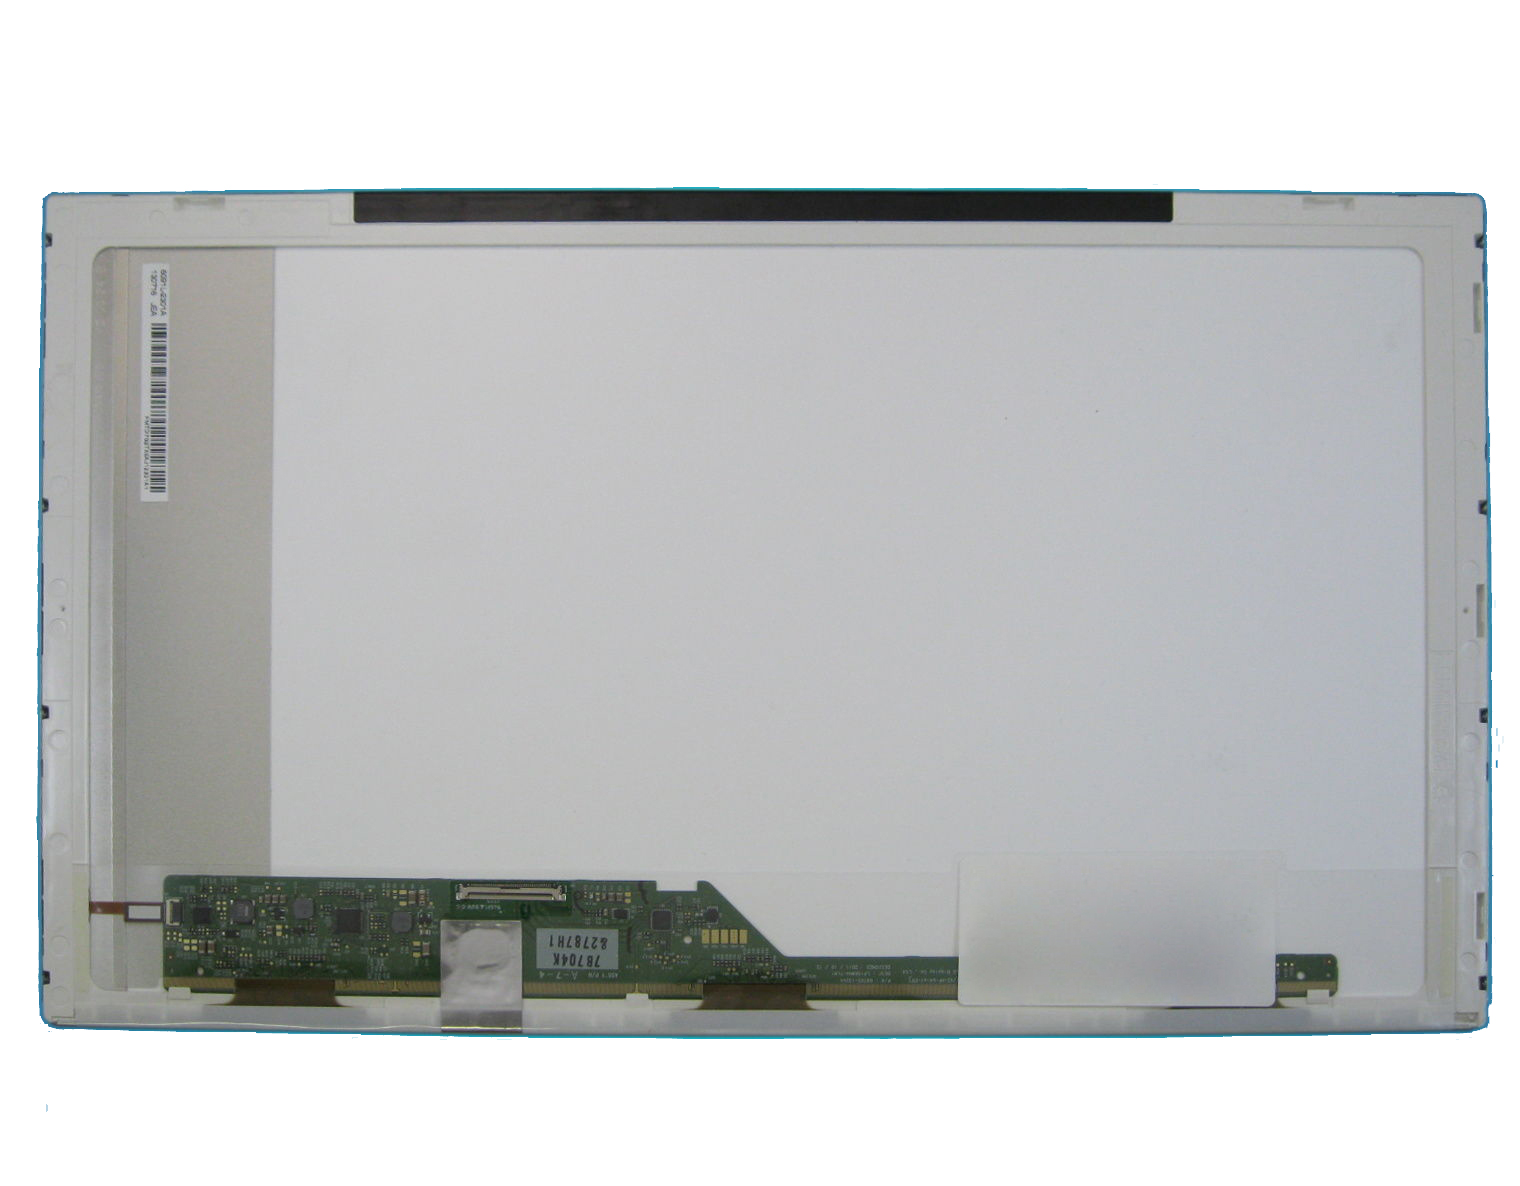 QuYing Laptop LCD Screen for ACER ASPIRE MS2286 MS2265 MS2264 (15.6 inch 1366x768 40pin TK) quying laptop lcd screen for acer extensa 5235 as5551 series 15 6 inch 1366x768 40pin tk